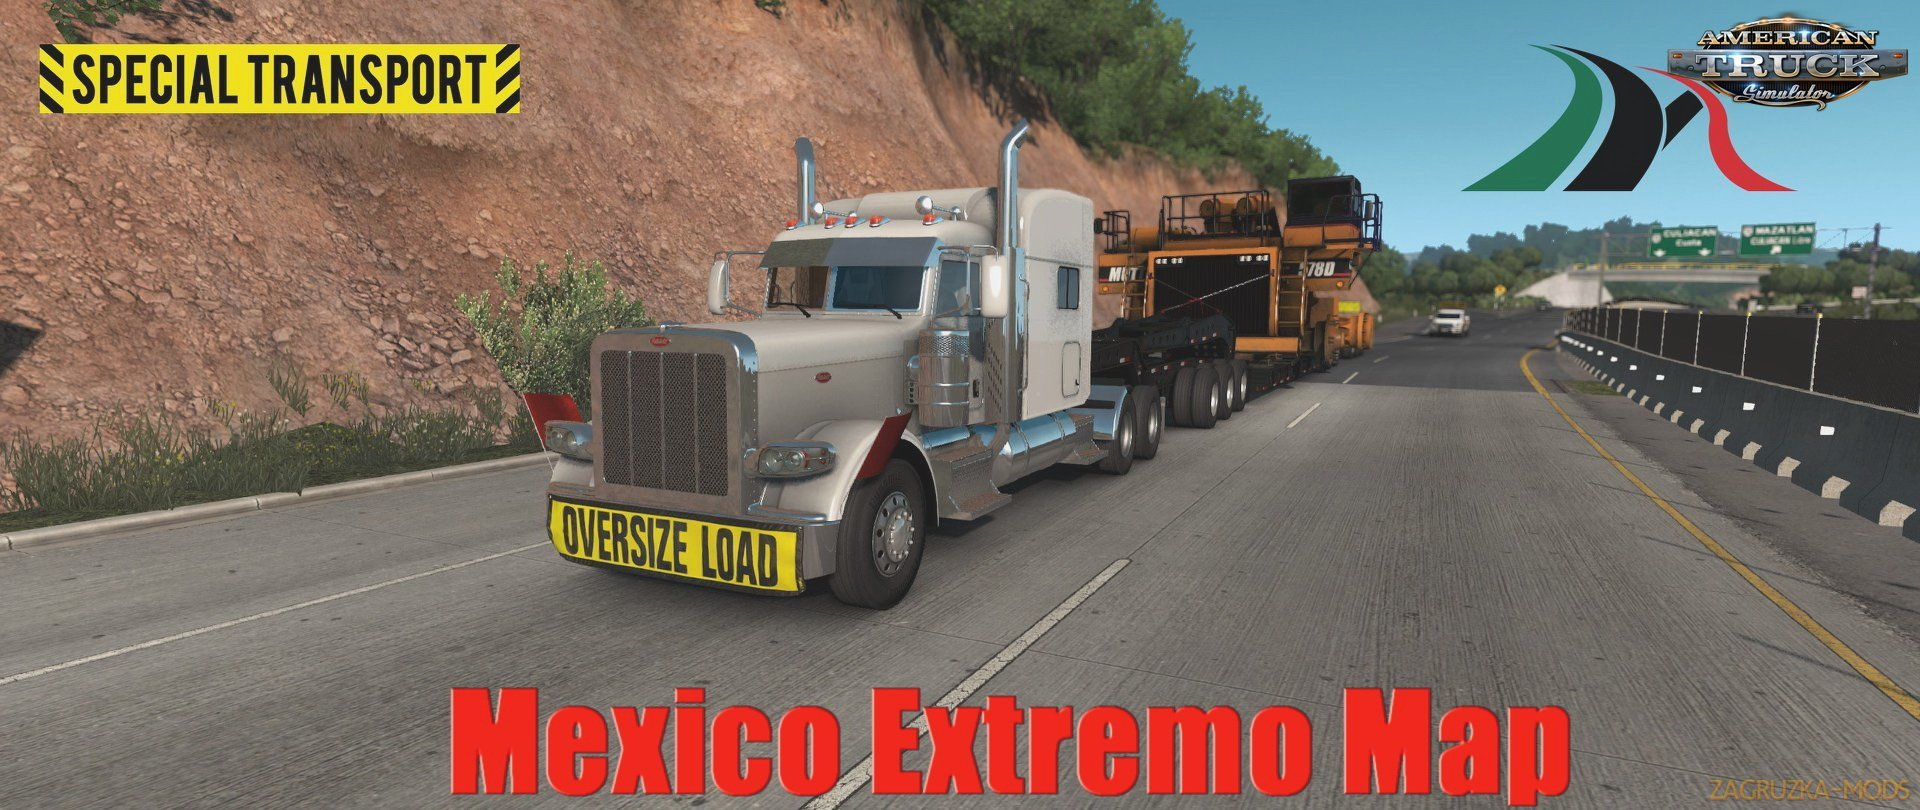 Mexico Extremo Map v2.1.9 (1.35.x) for ATS